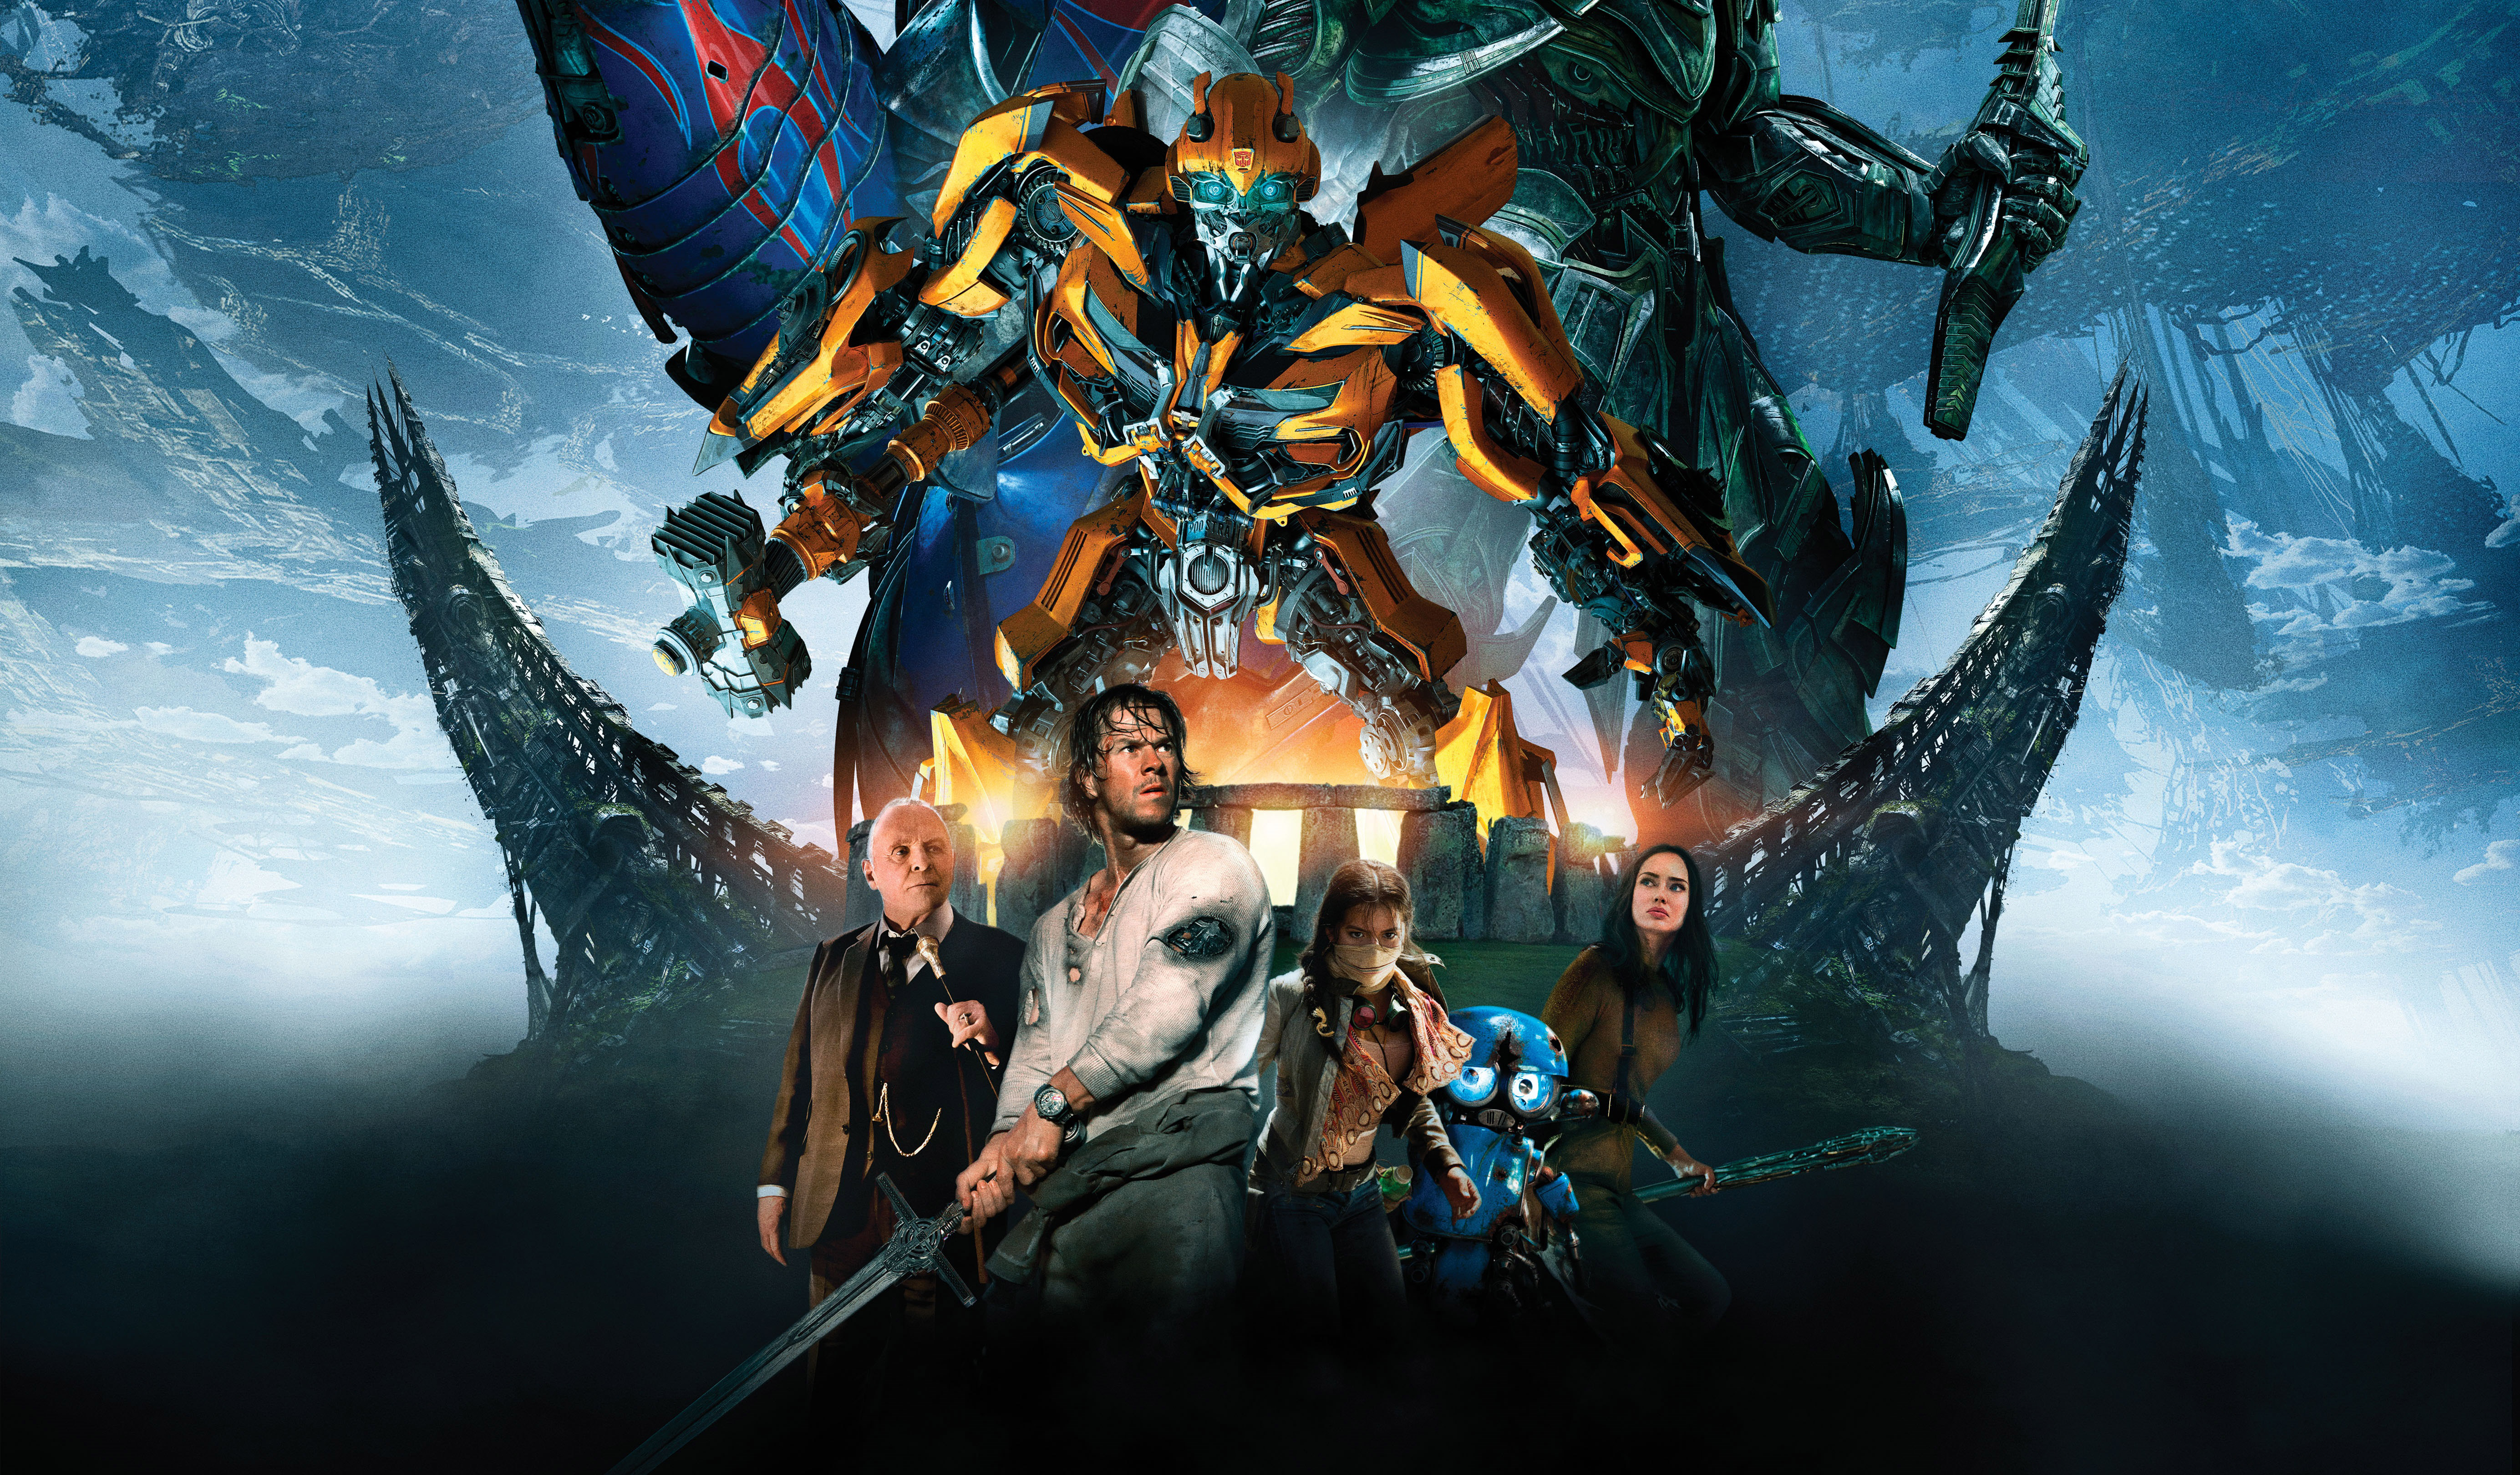 transformers the full movie 2017